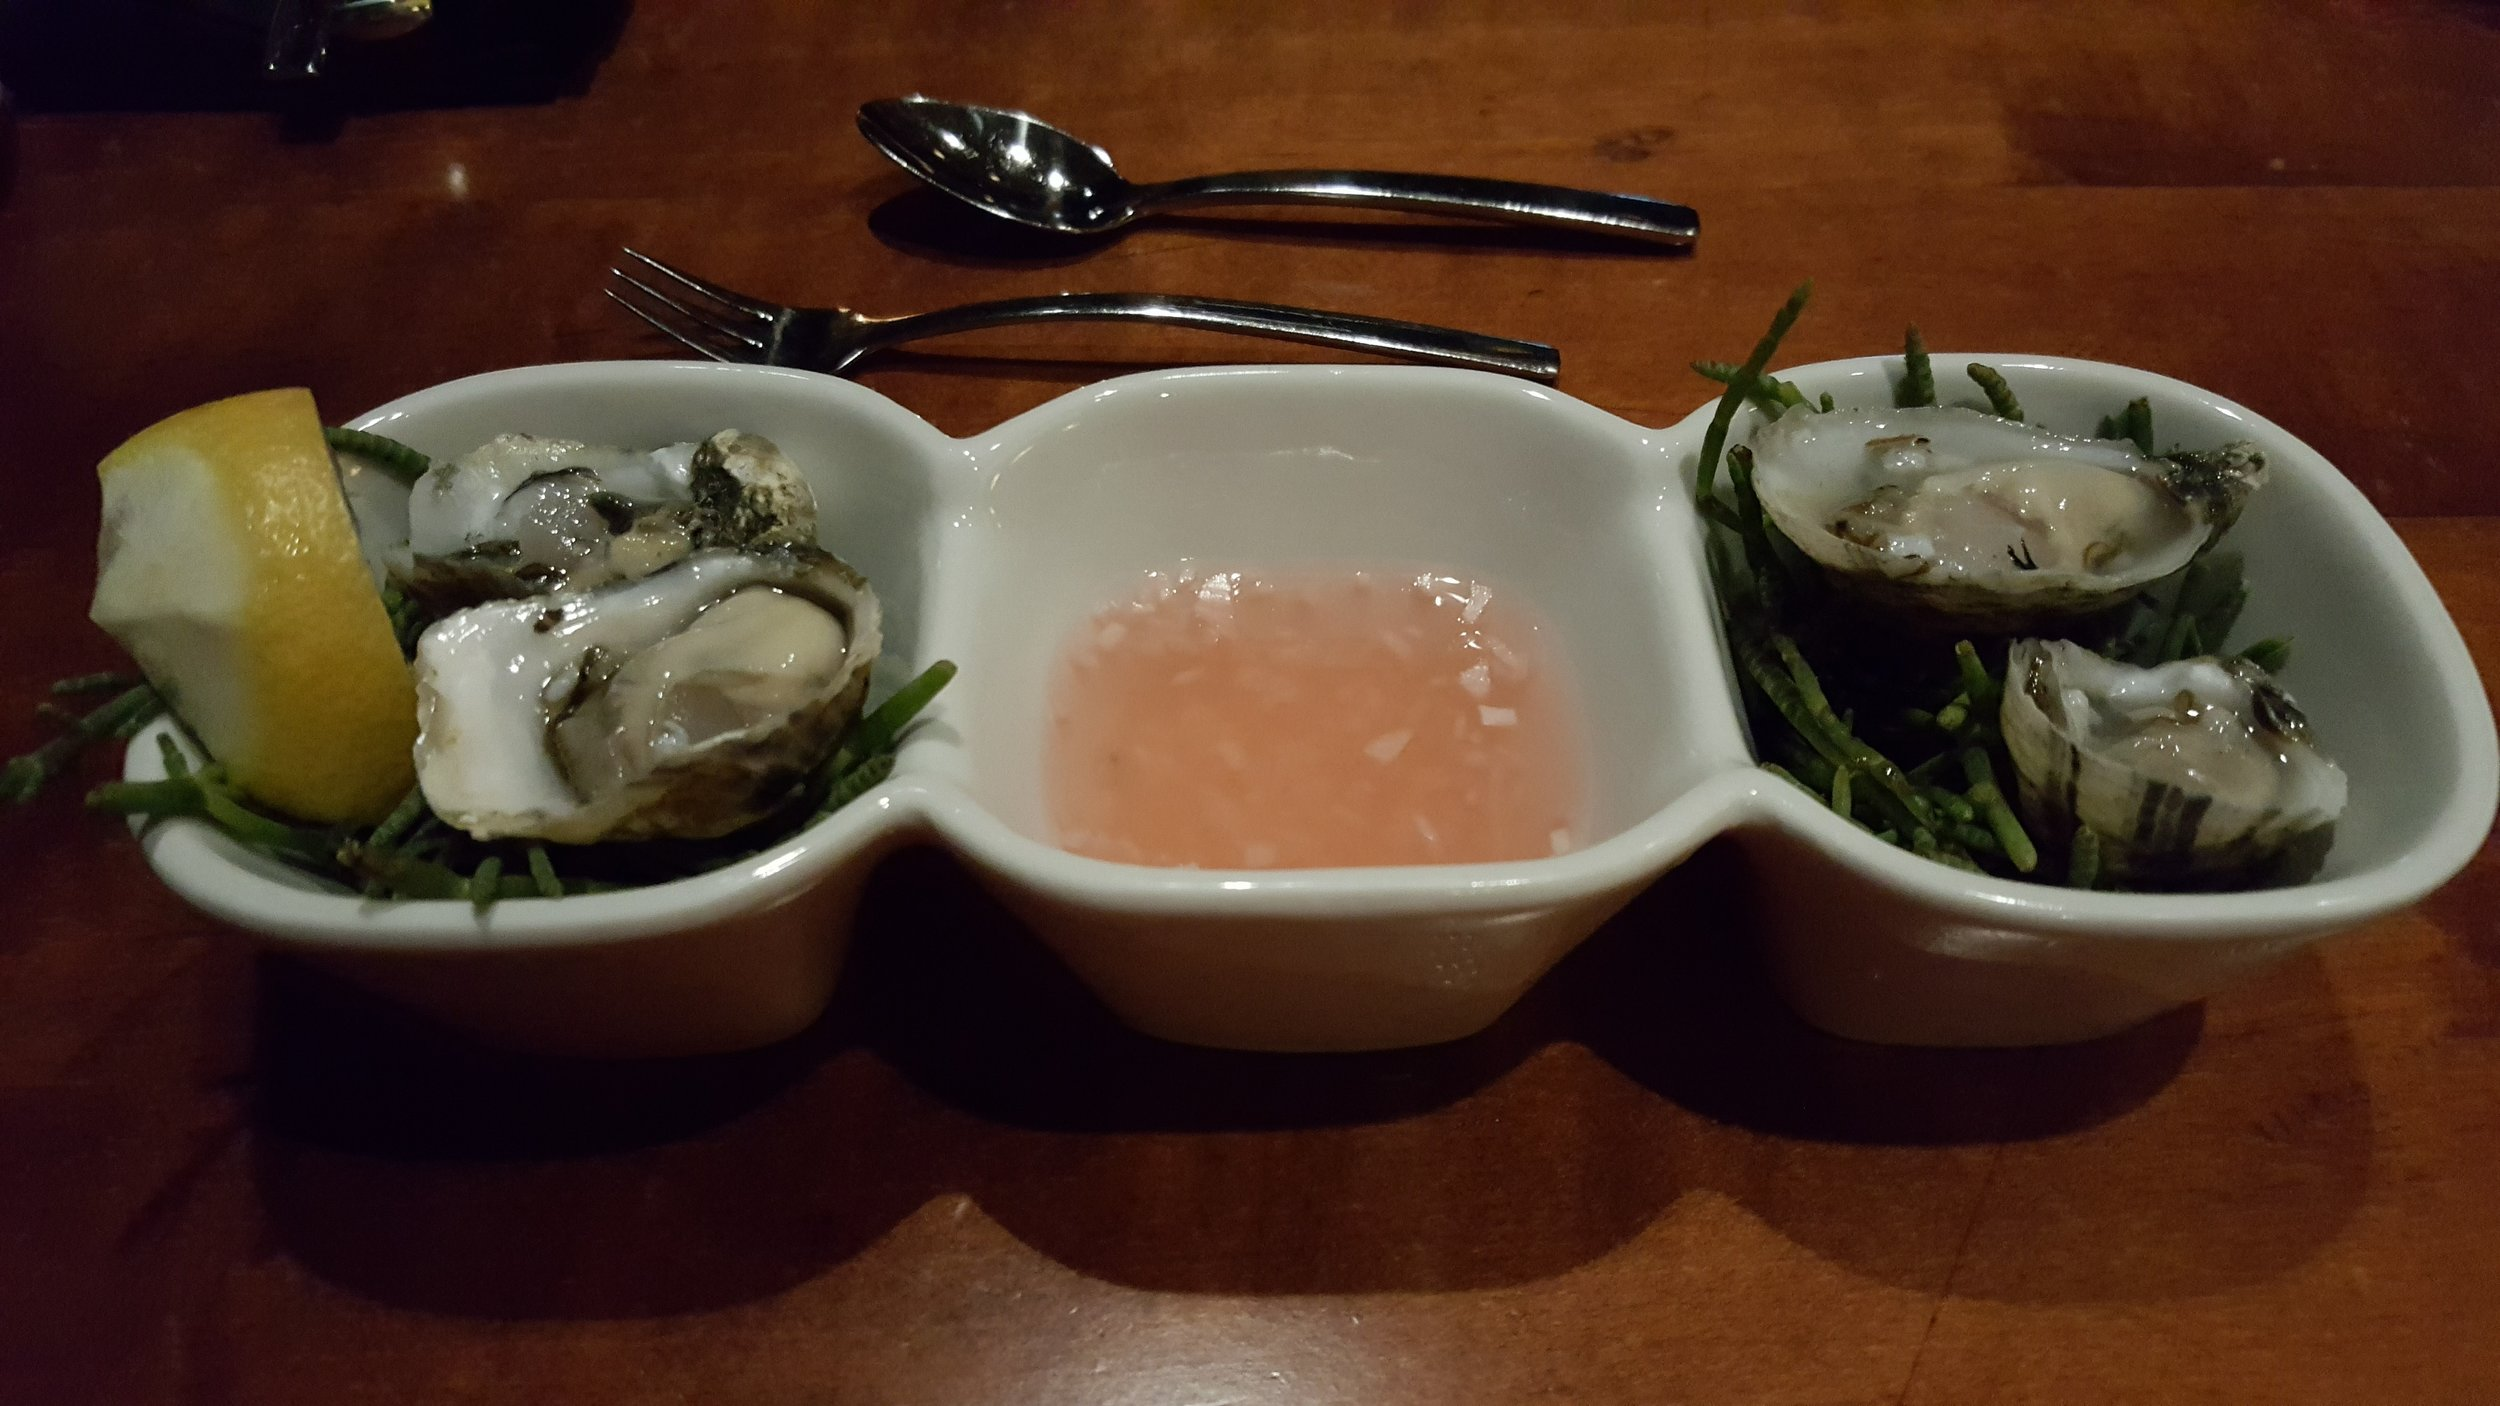 Oysters are part of a 3 course meal at The Samphire